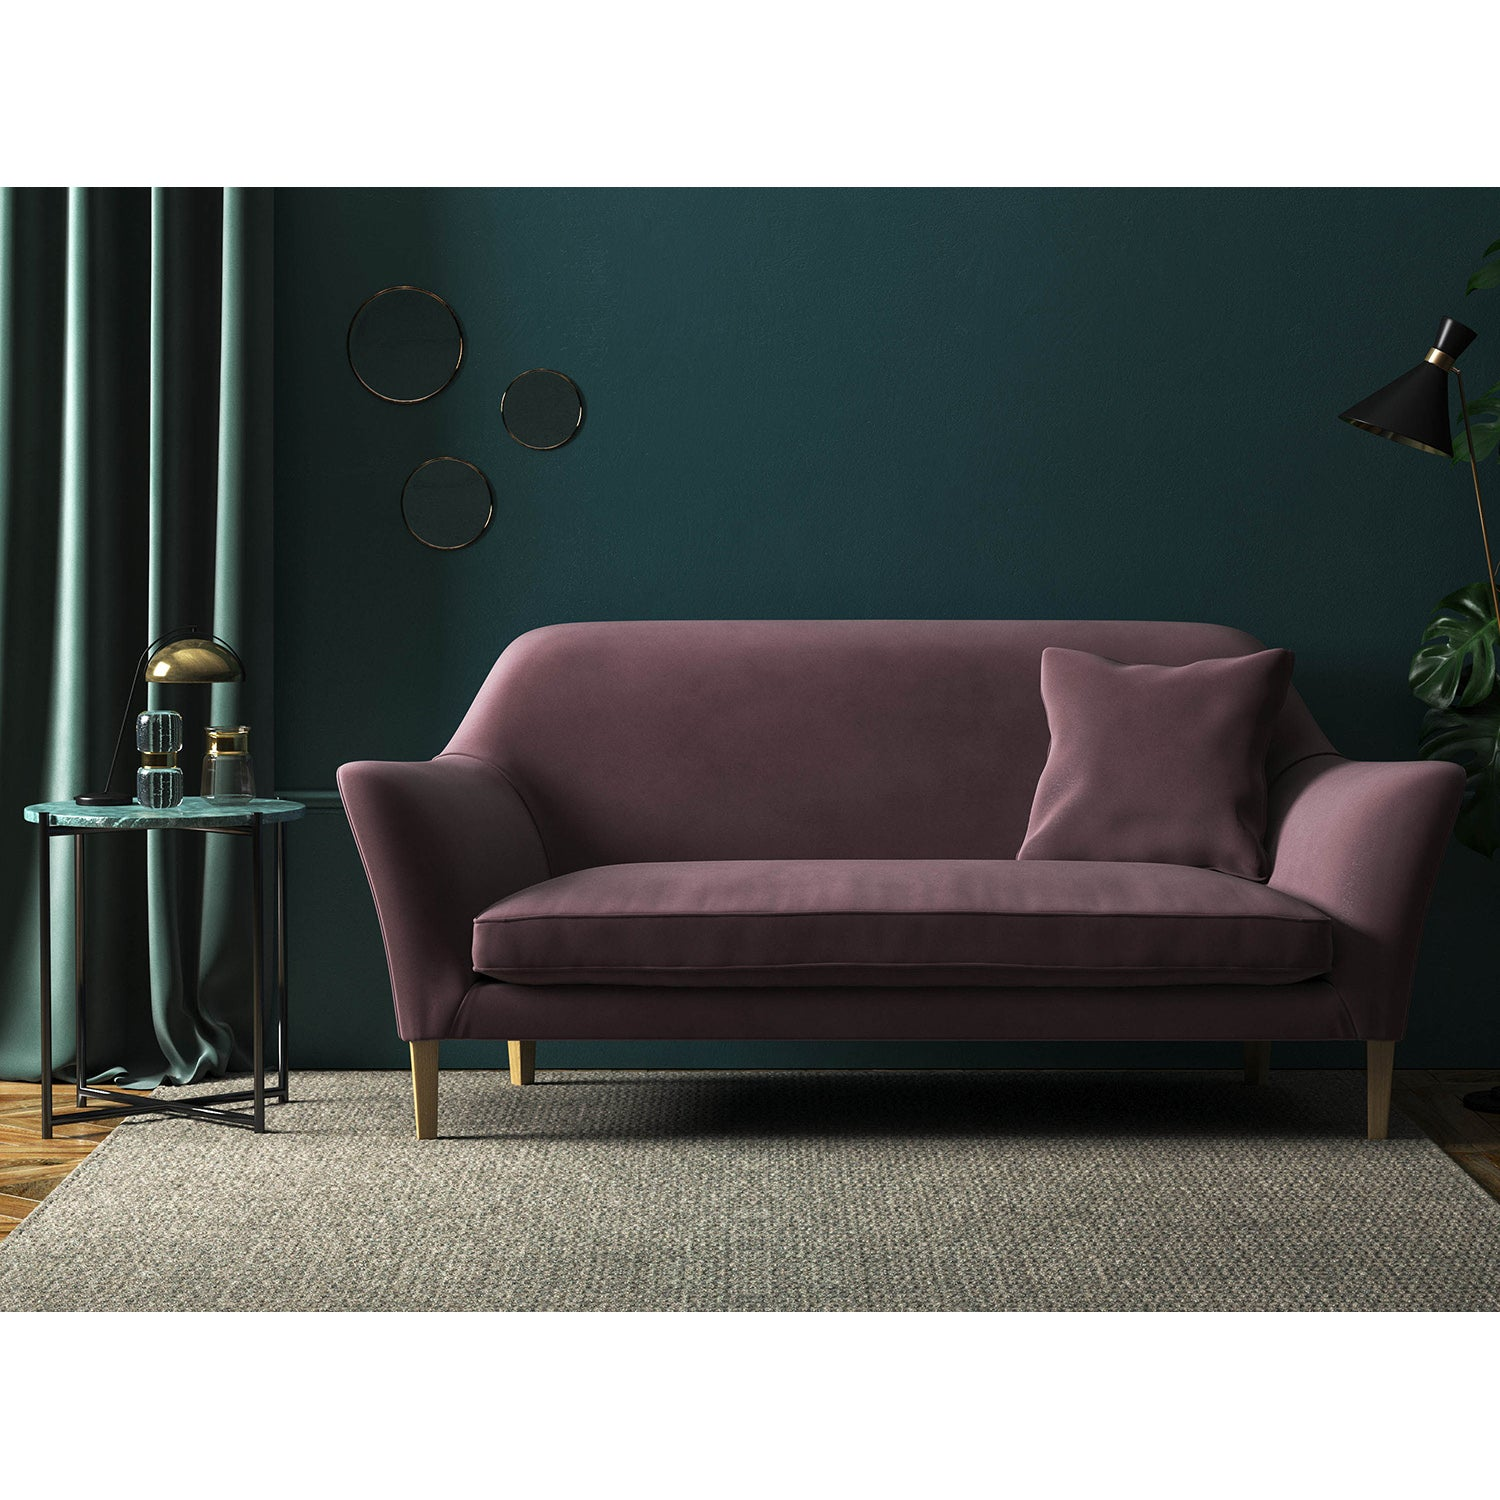 Sofa in a luxury mauve plain velvet fabric for domestic or contract curtains and upholstery